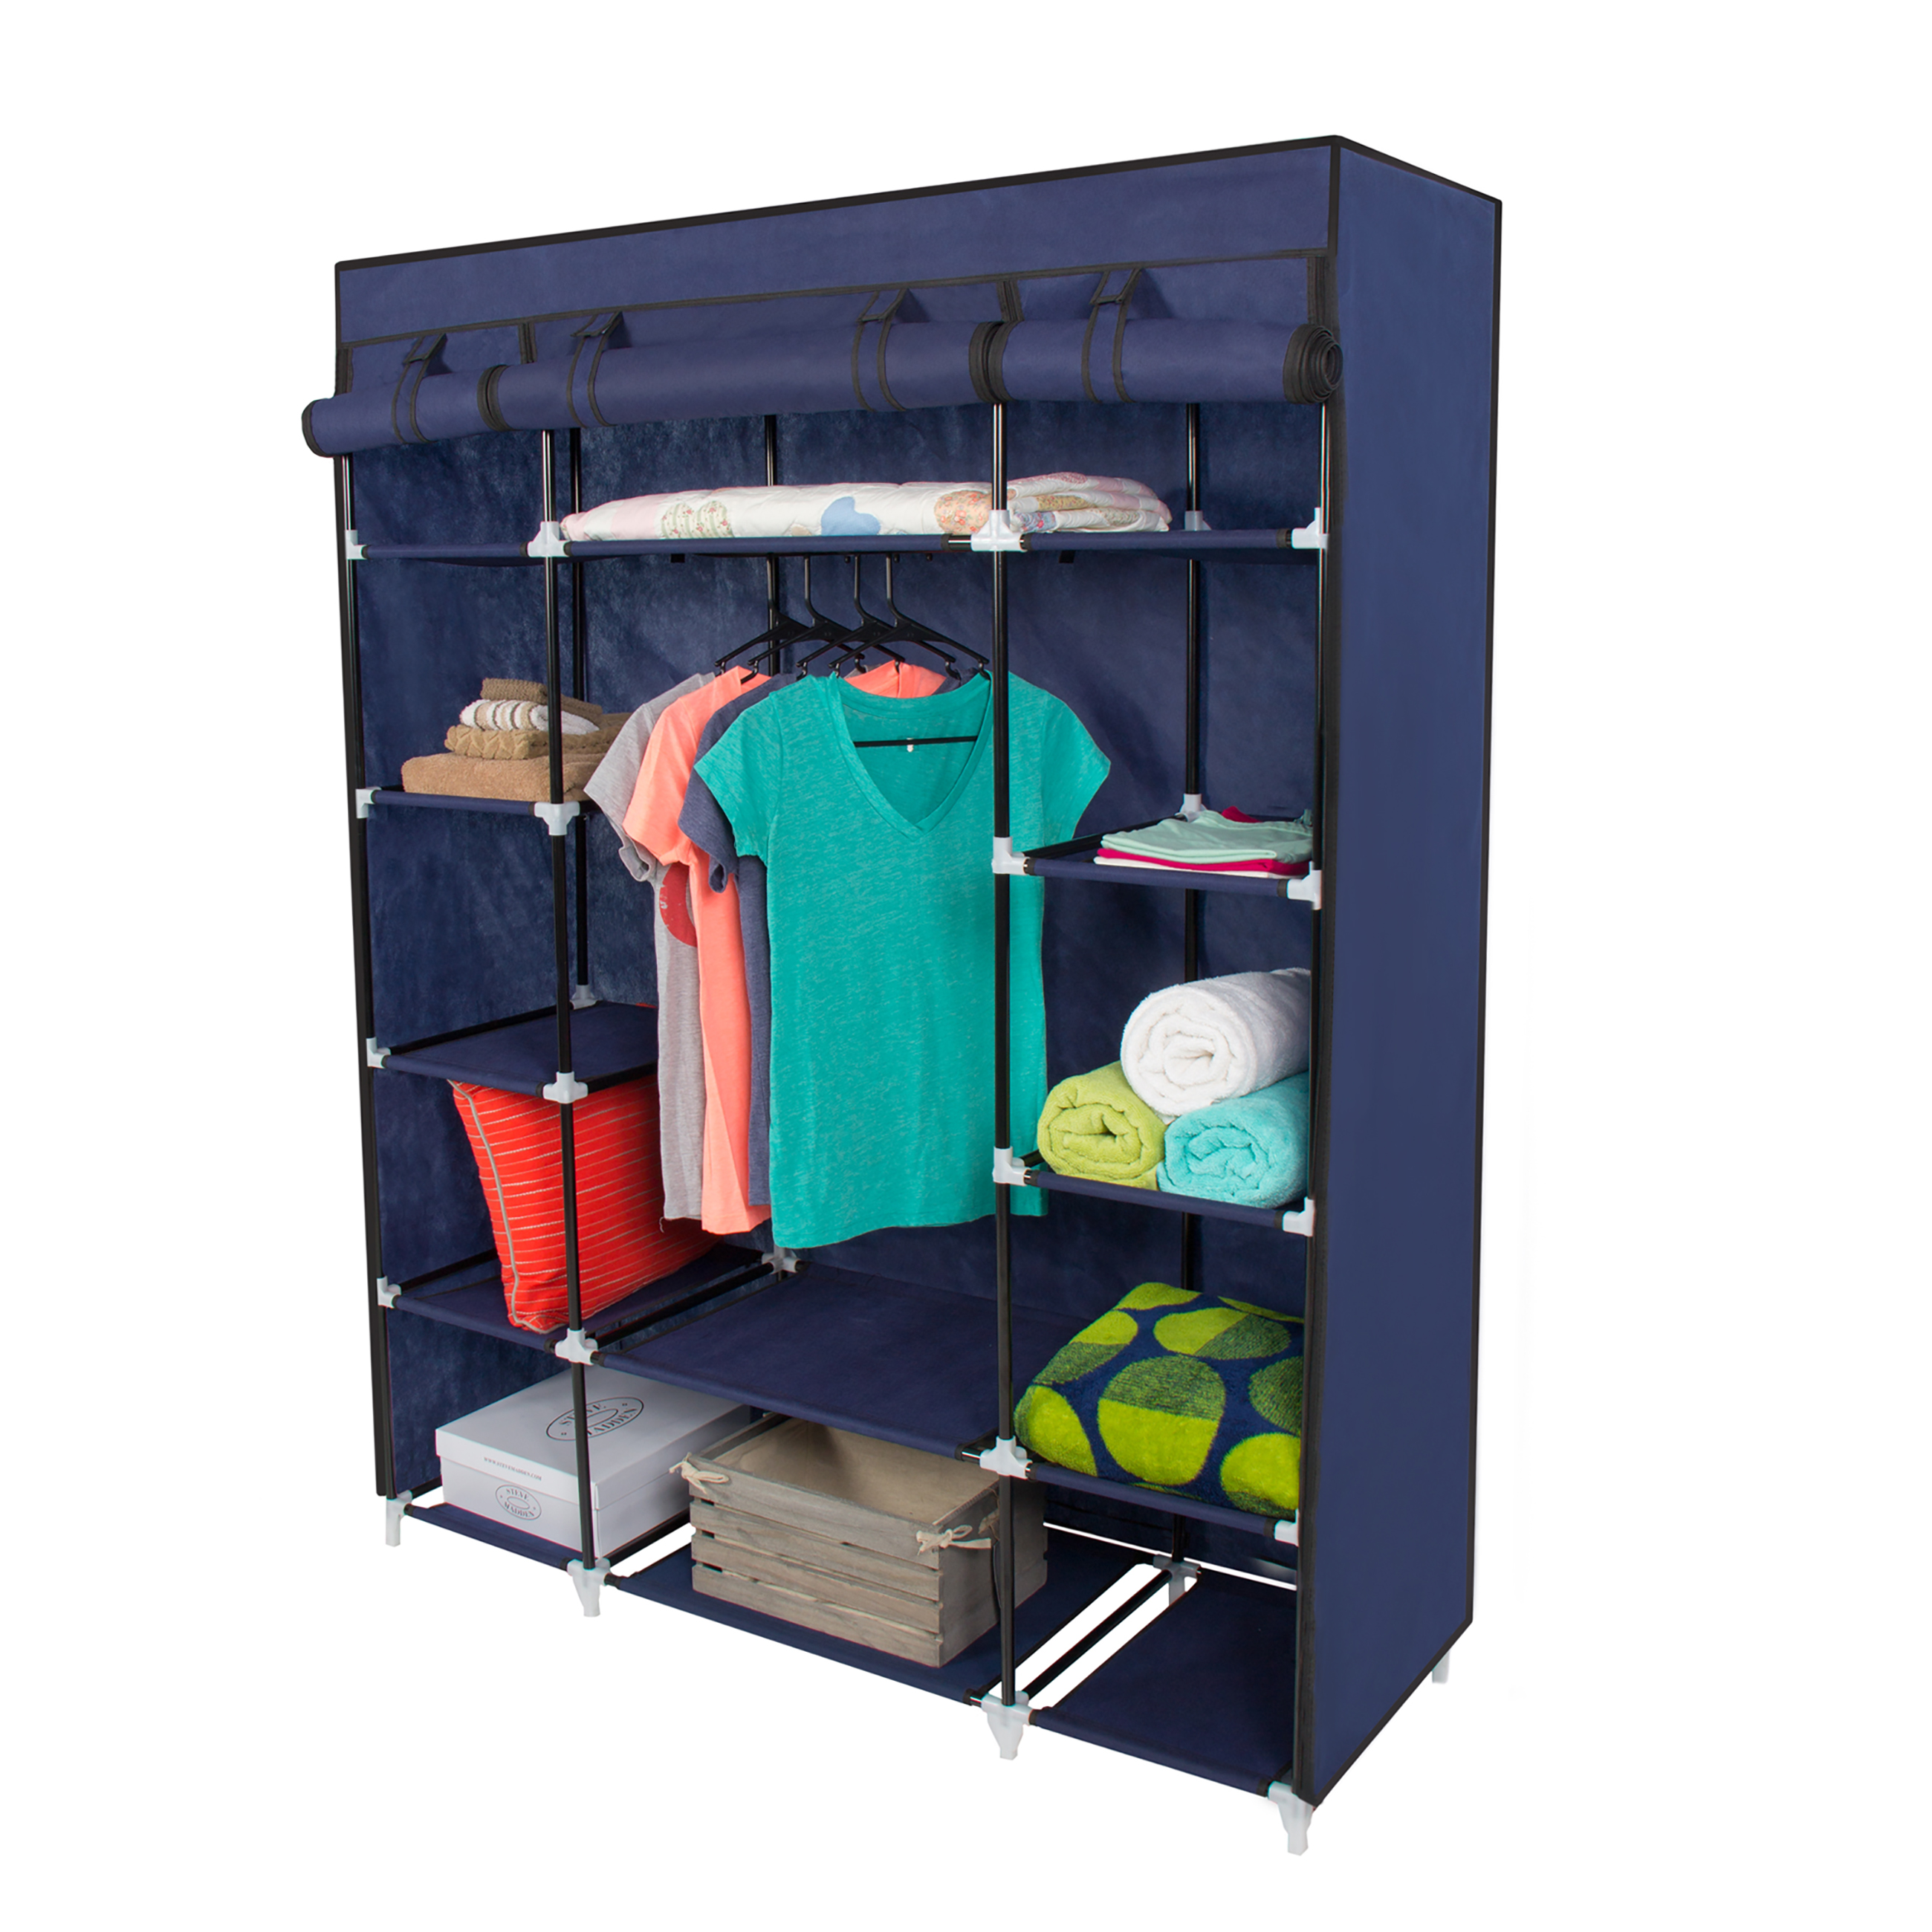 portable wardrobe 53u201d portable closet storage organizer wardrobe clothes rack with shelves  blue NJPBYQB